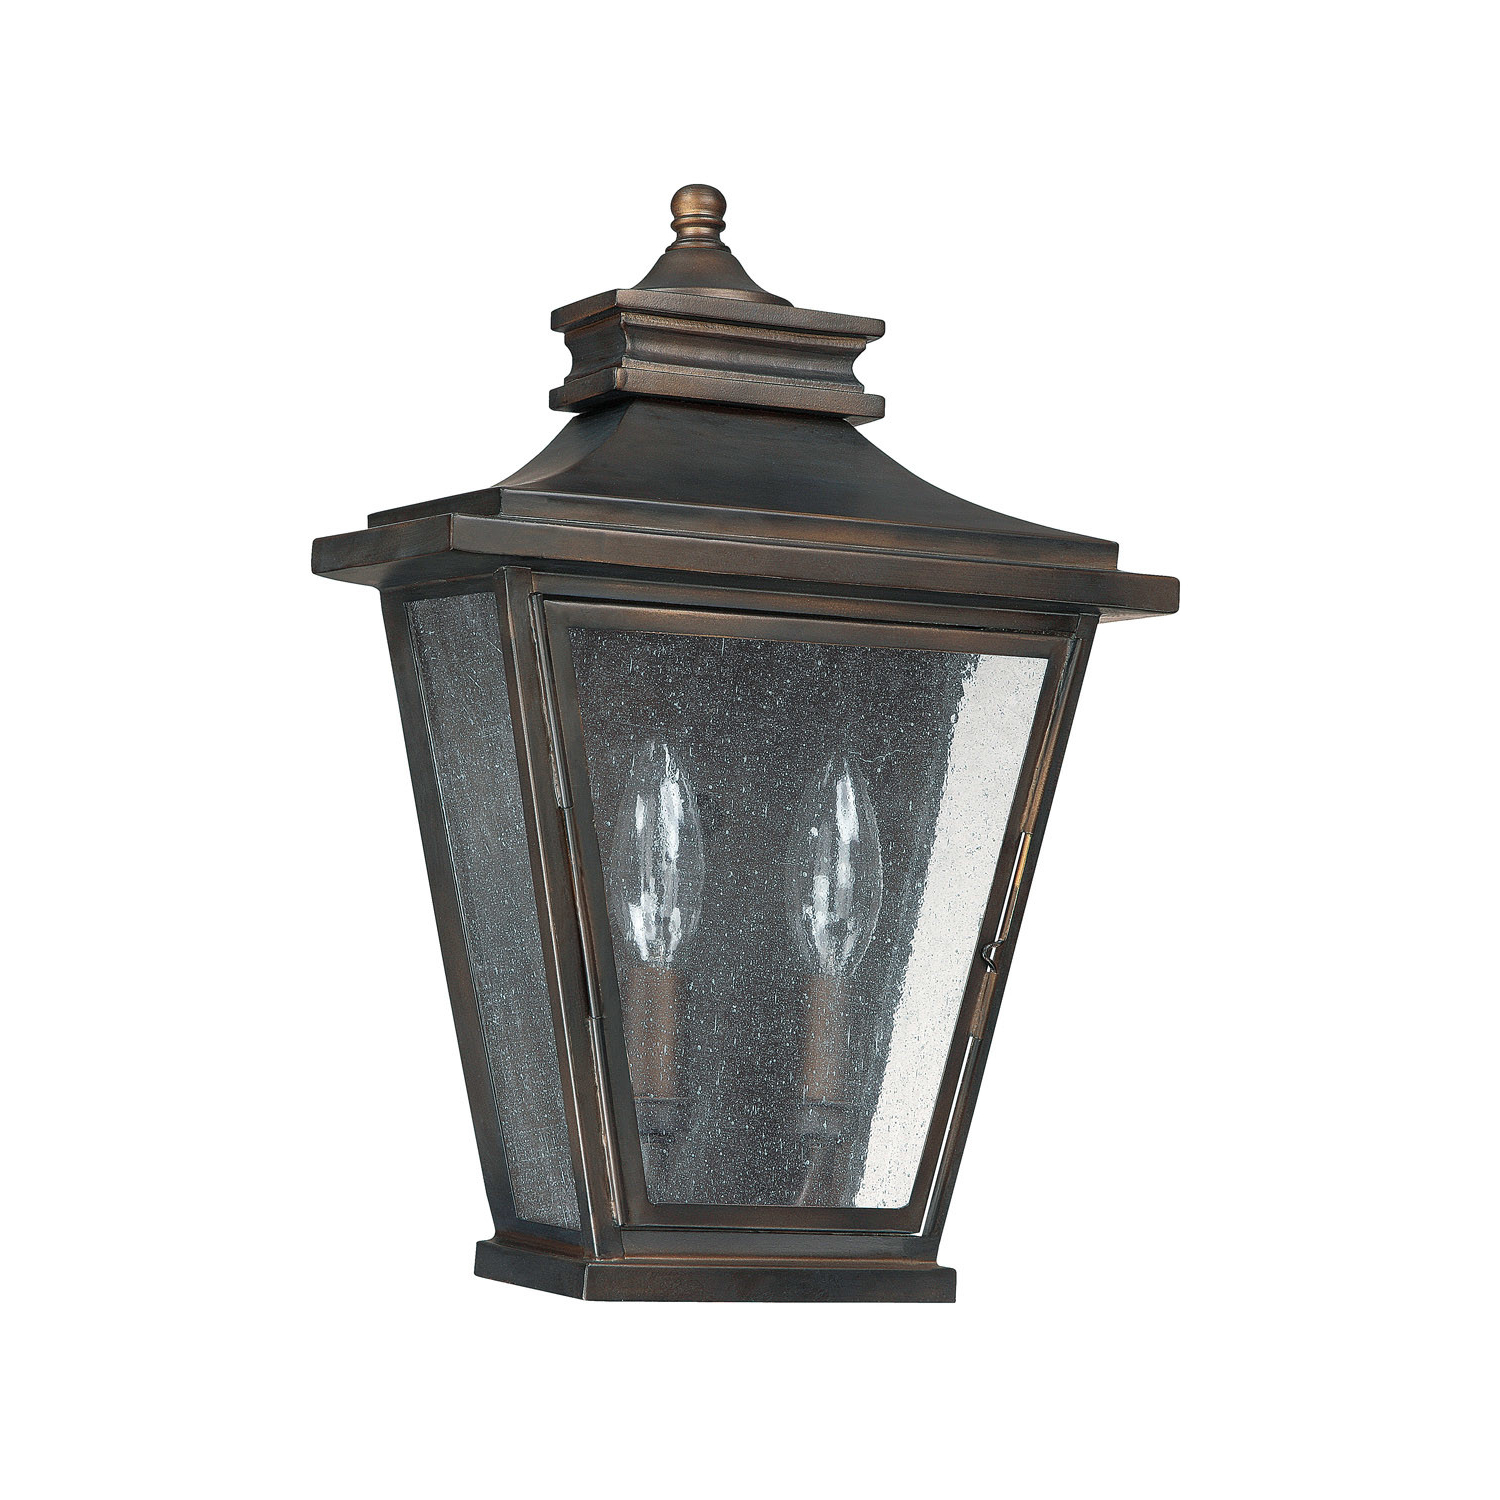 Famous Chicopee 2 – Bulb Glass Outdoor Wall Lanterns Pertaining To Capital Lighting 9460 Bronze Astor 2 Light Ada Compliant (View 8 of 20)